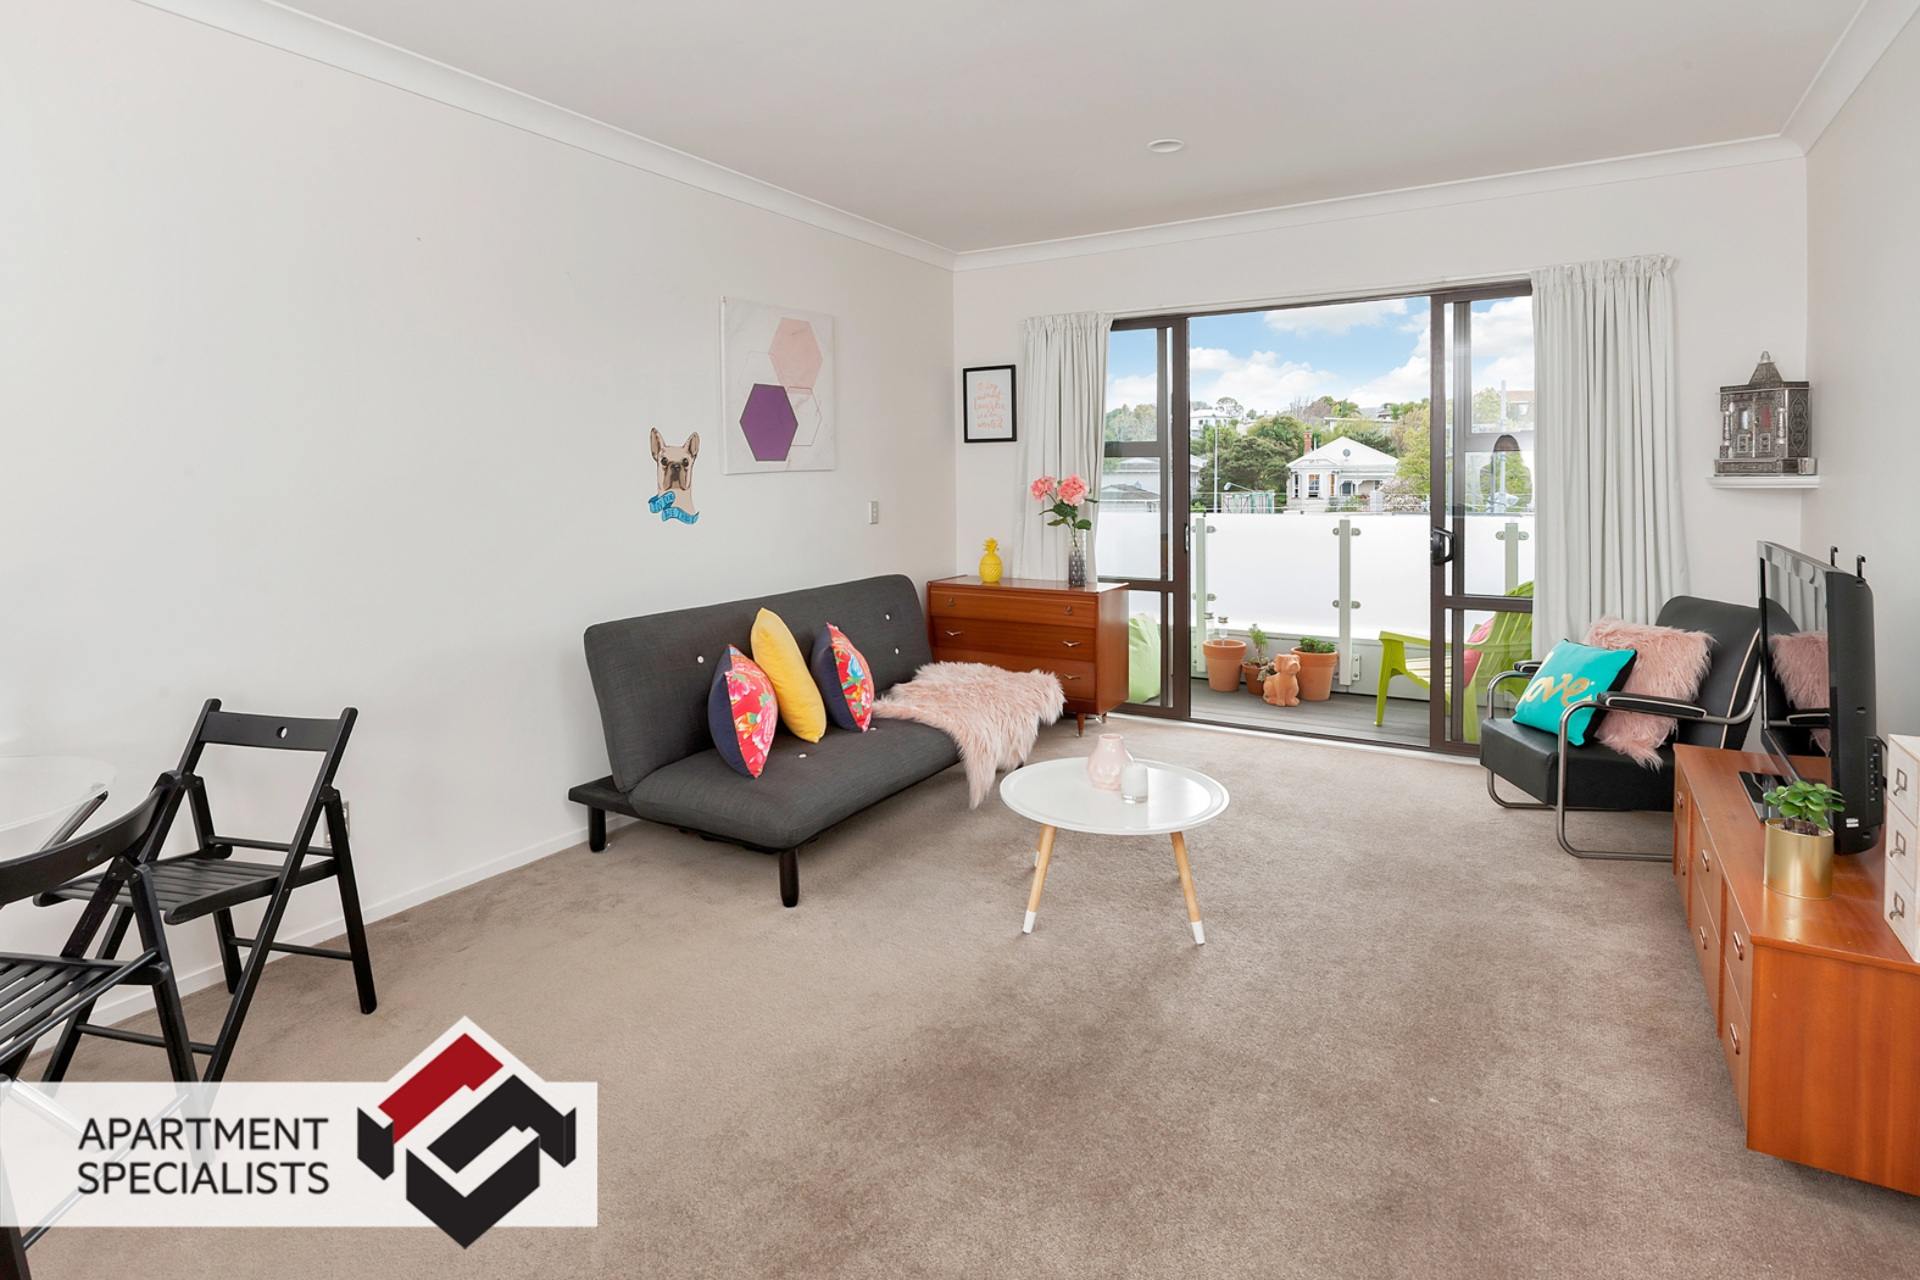 Hero | 3 Morningside Drive, Kingsland | Apartment Specialists